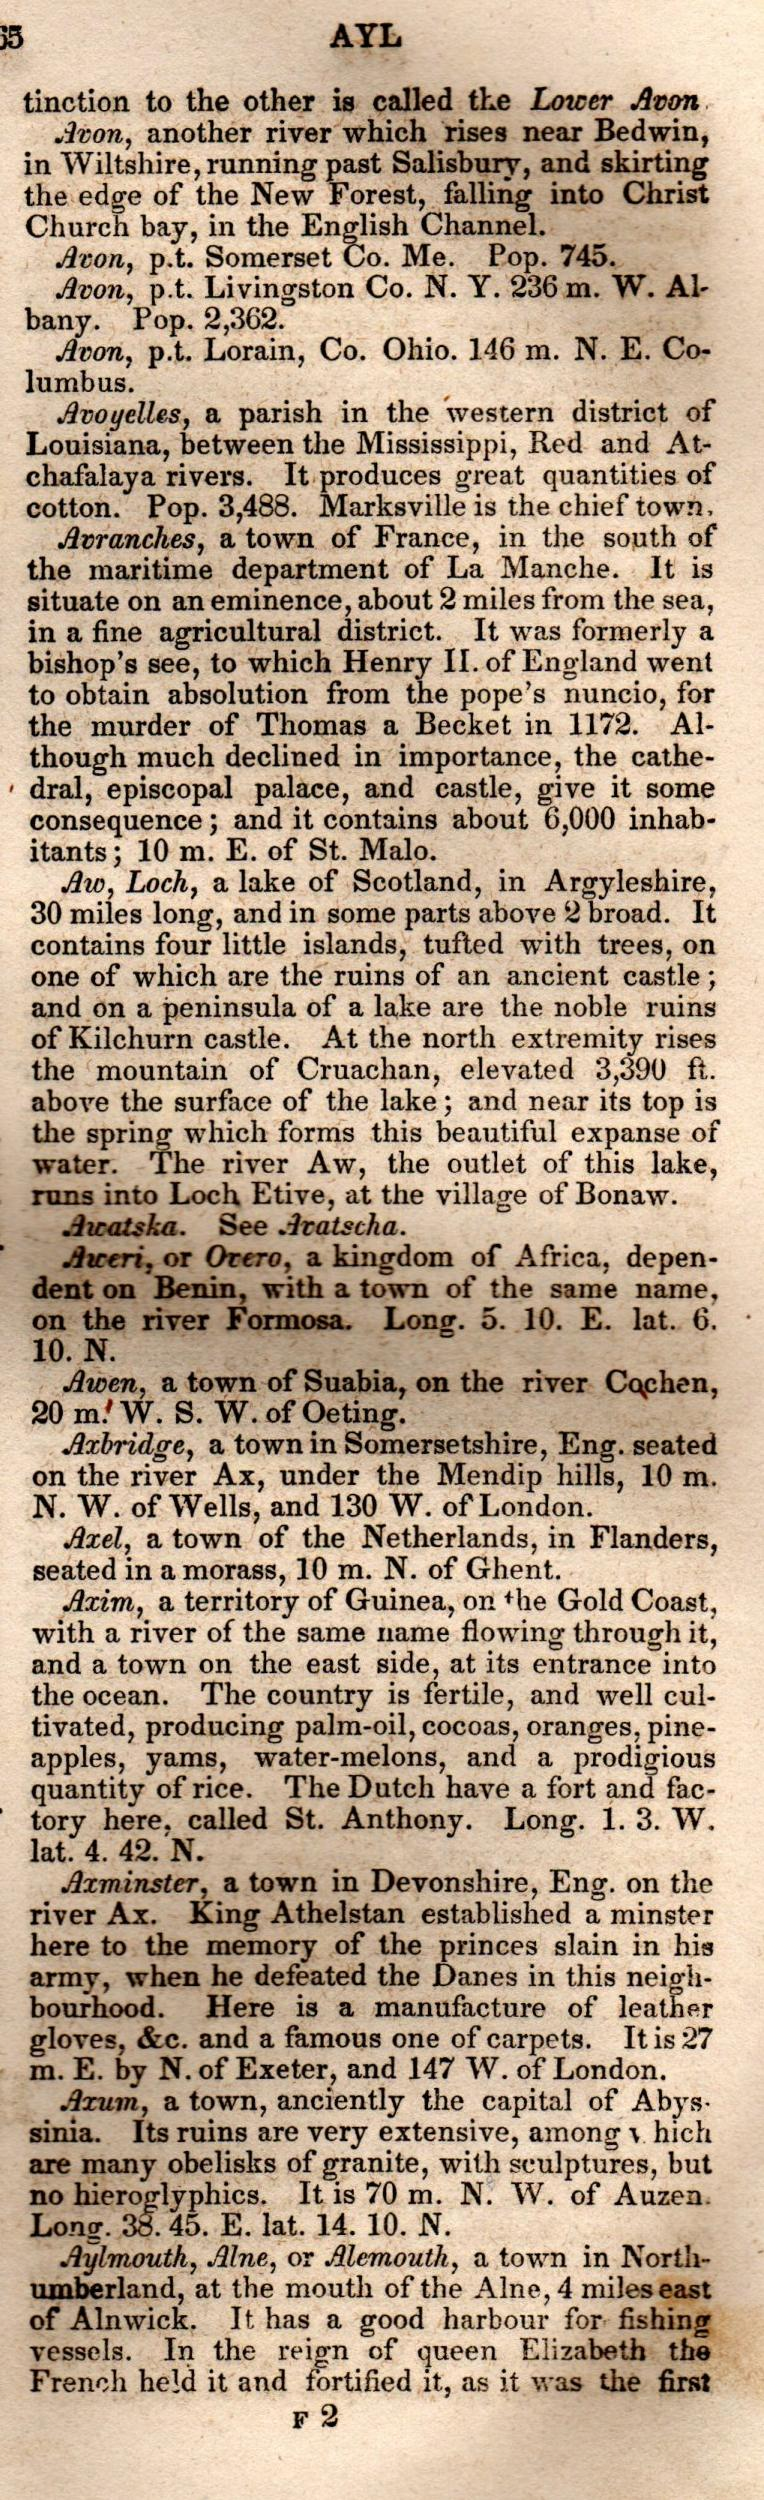 Brookes' Universal Gazetteer (1850), Page  65  Right Column